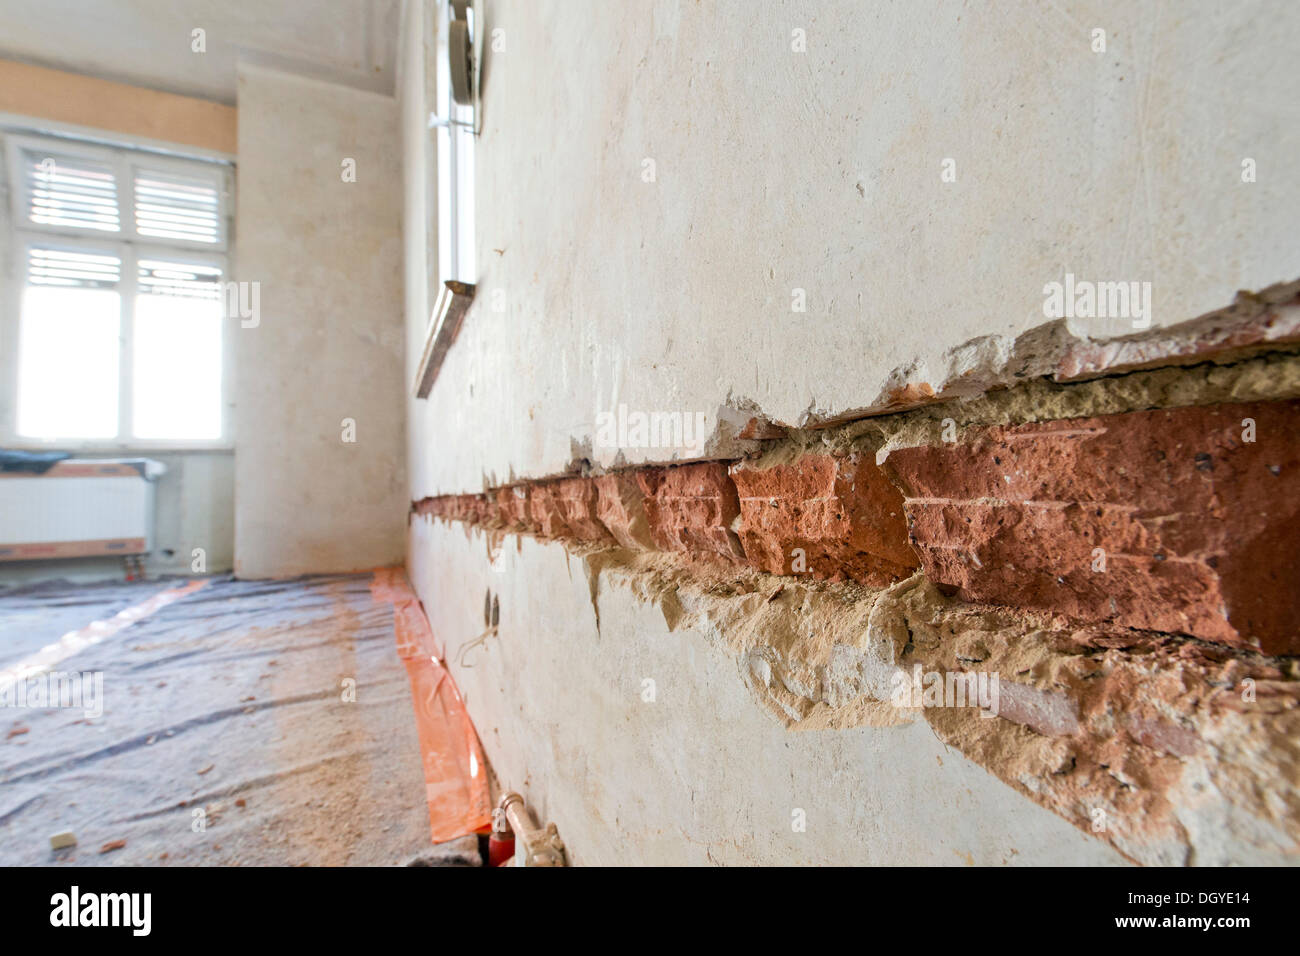 preparatory work on a wall for installing new cable canals and sockets,  flush mounting, electrical wiring in an old building